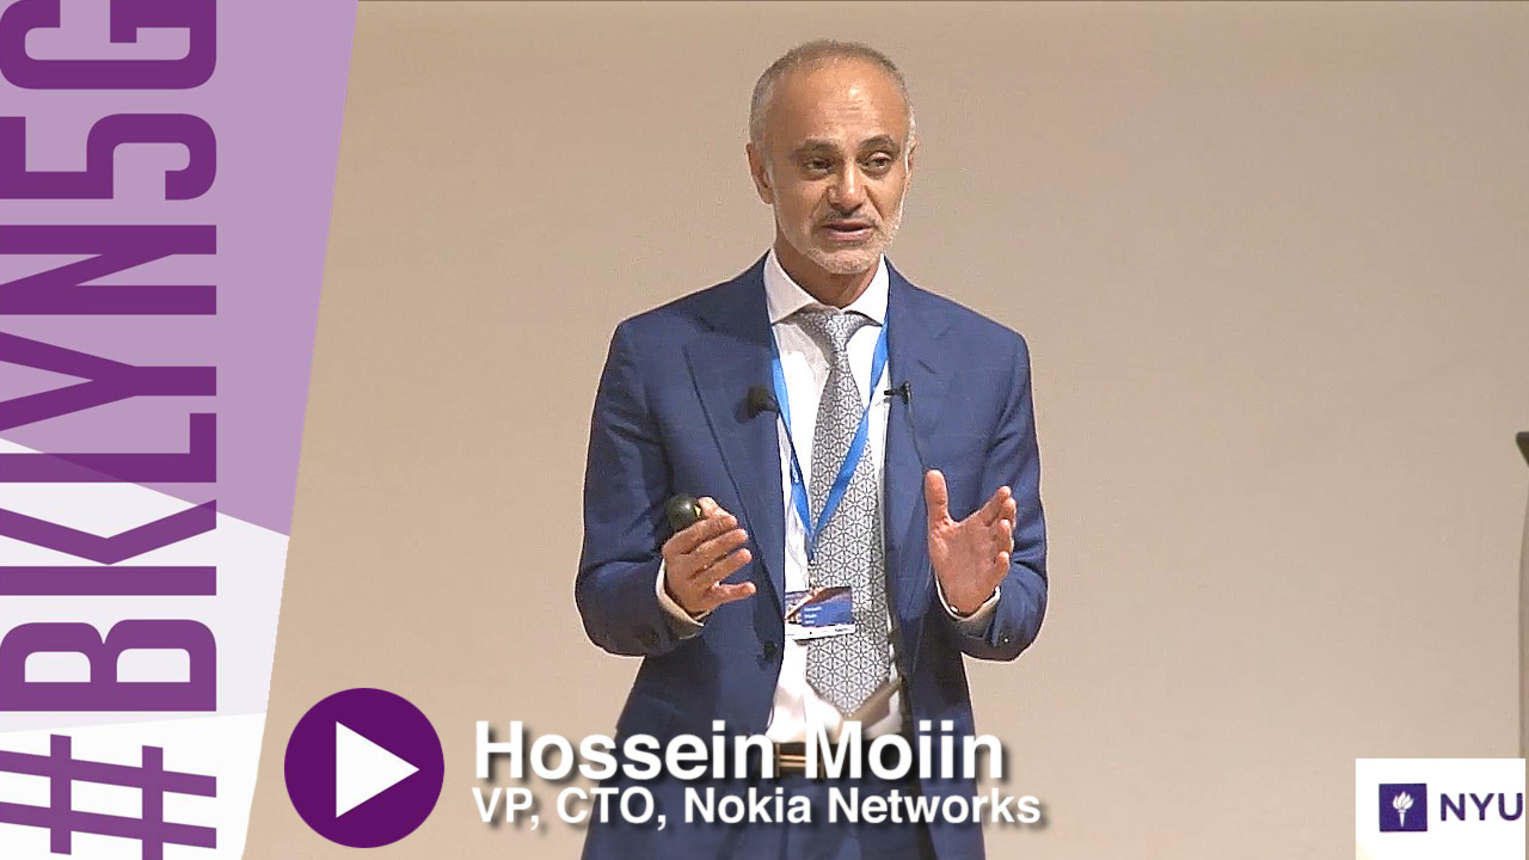 Brooklyn 5G - 2015 -  Hossein Moiin - Expanding the Human Possibilities with 5G